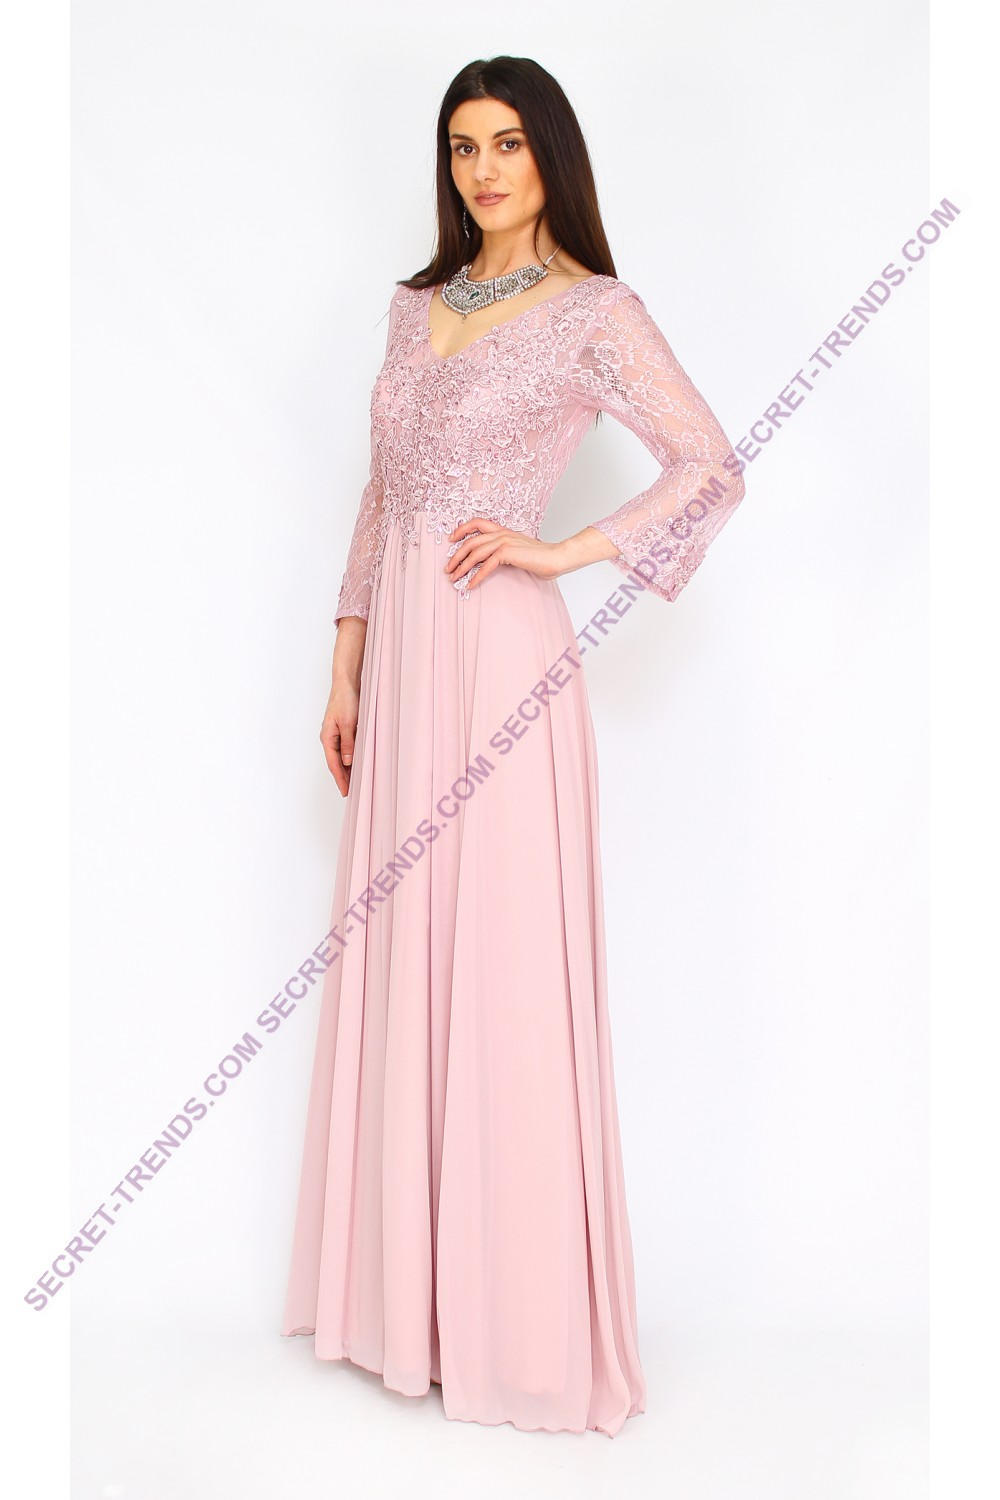 Elegant evening dress long sleeved with floral lace by Juju ...